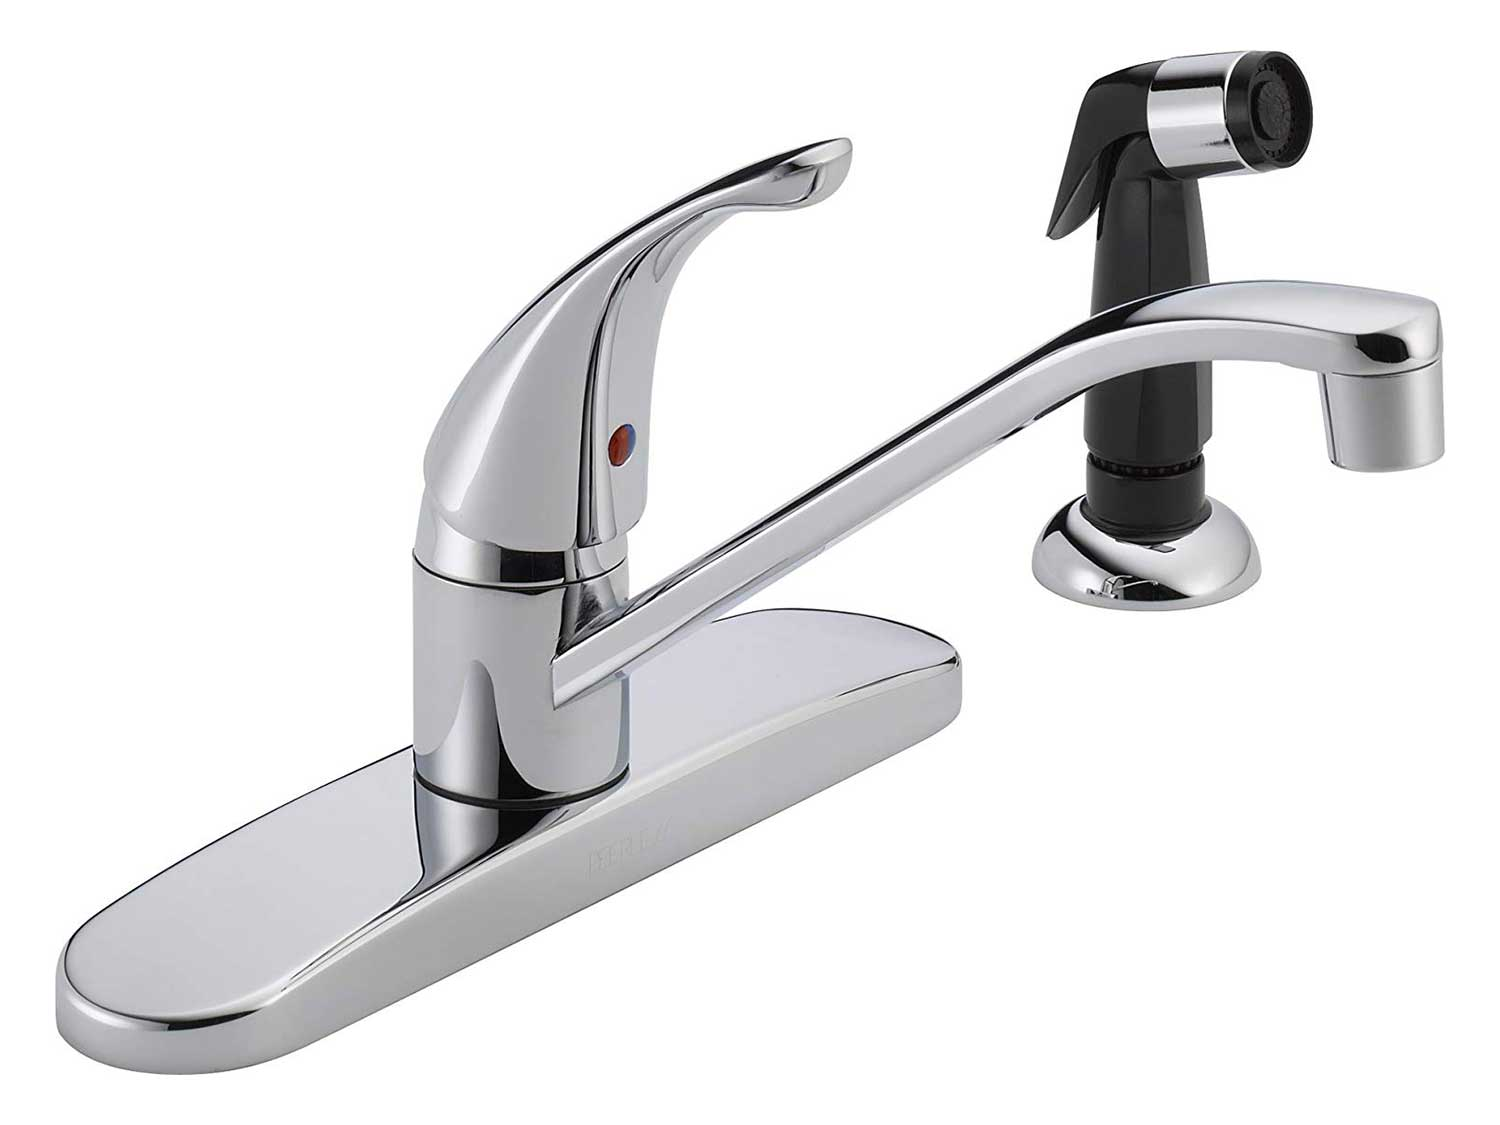 Peerless Single-Handle Kitchen Sink Faucet with Side Sprayer, Chrome.